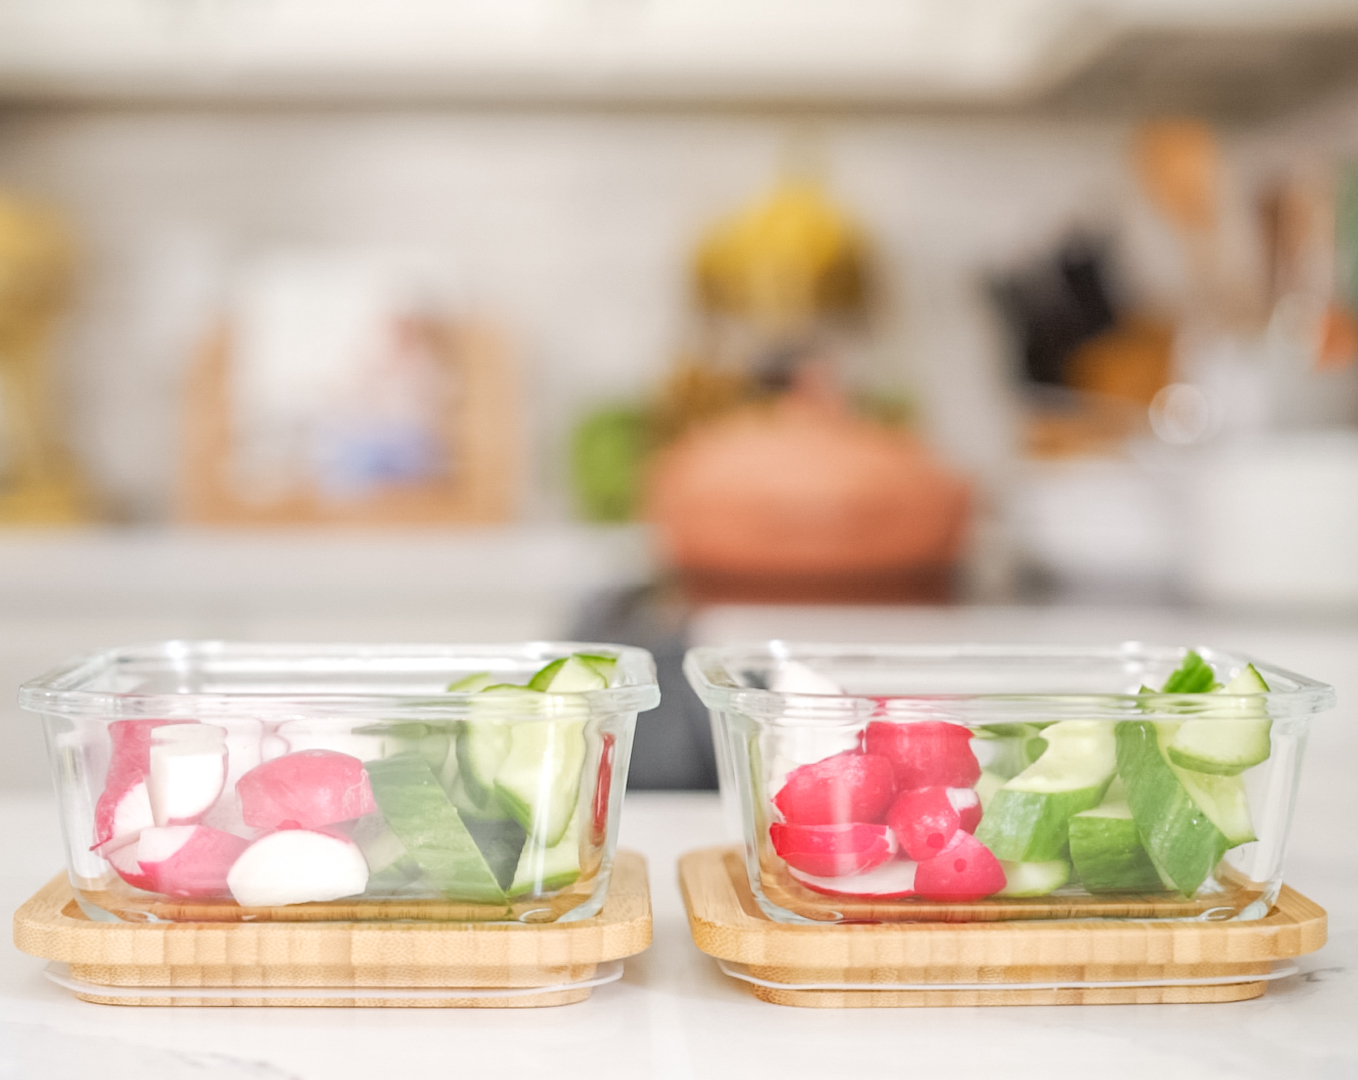 chopped up cucumber and radish to dip in hummus in glass containers